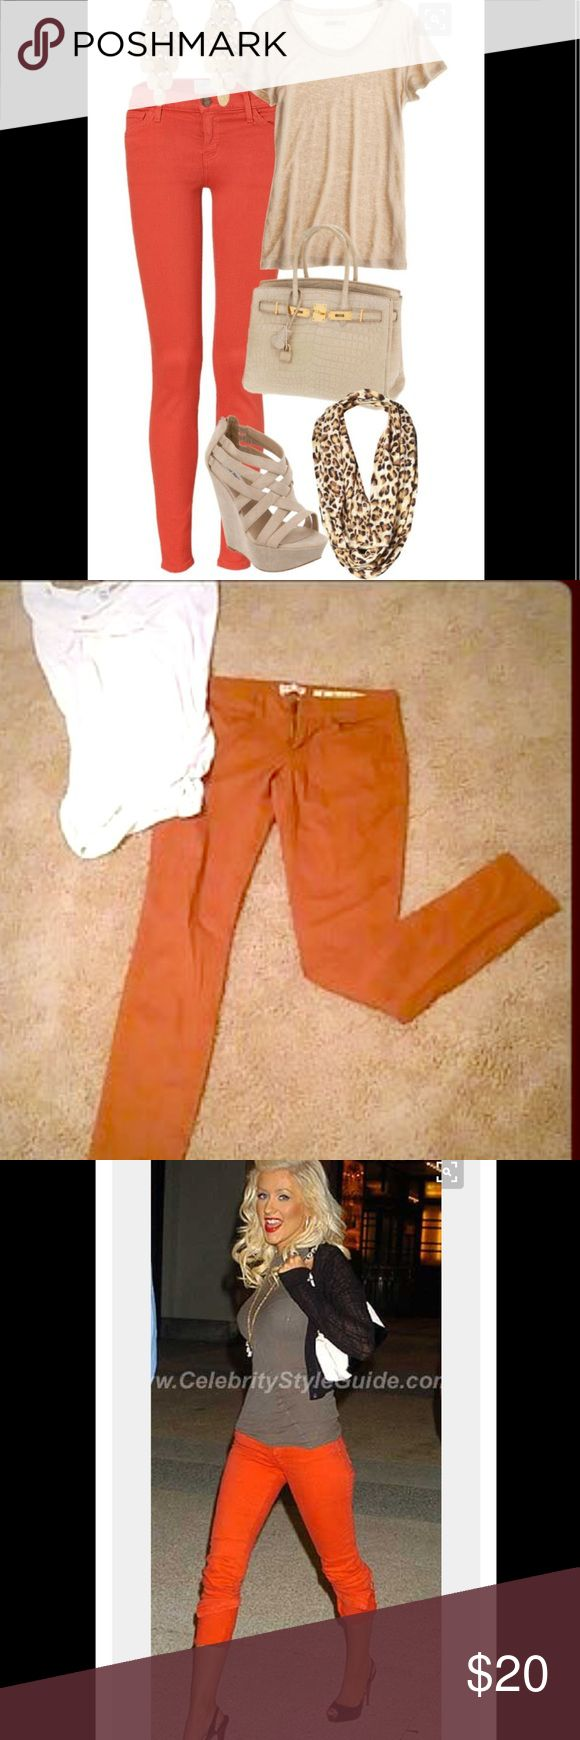 New-Burnt Orange Skinny Jeans 🍊😍 New-Burnt Orange Skinny Jeans 🍊-Never worn. How cute are these??!! Absolutely love this type of jeans & the color is so trendy!! These are hot!! Especially with a cute pair of kitten heels!! You will absolutely loveeeee!! Bundle & Save!! 😍🍊🍊 Indigo Rein Jeans Skinny